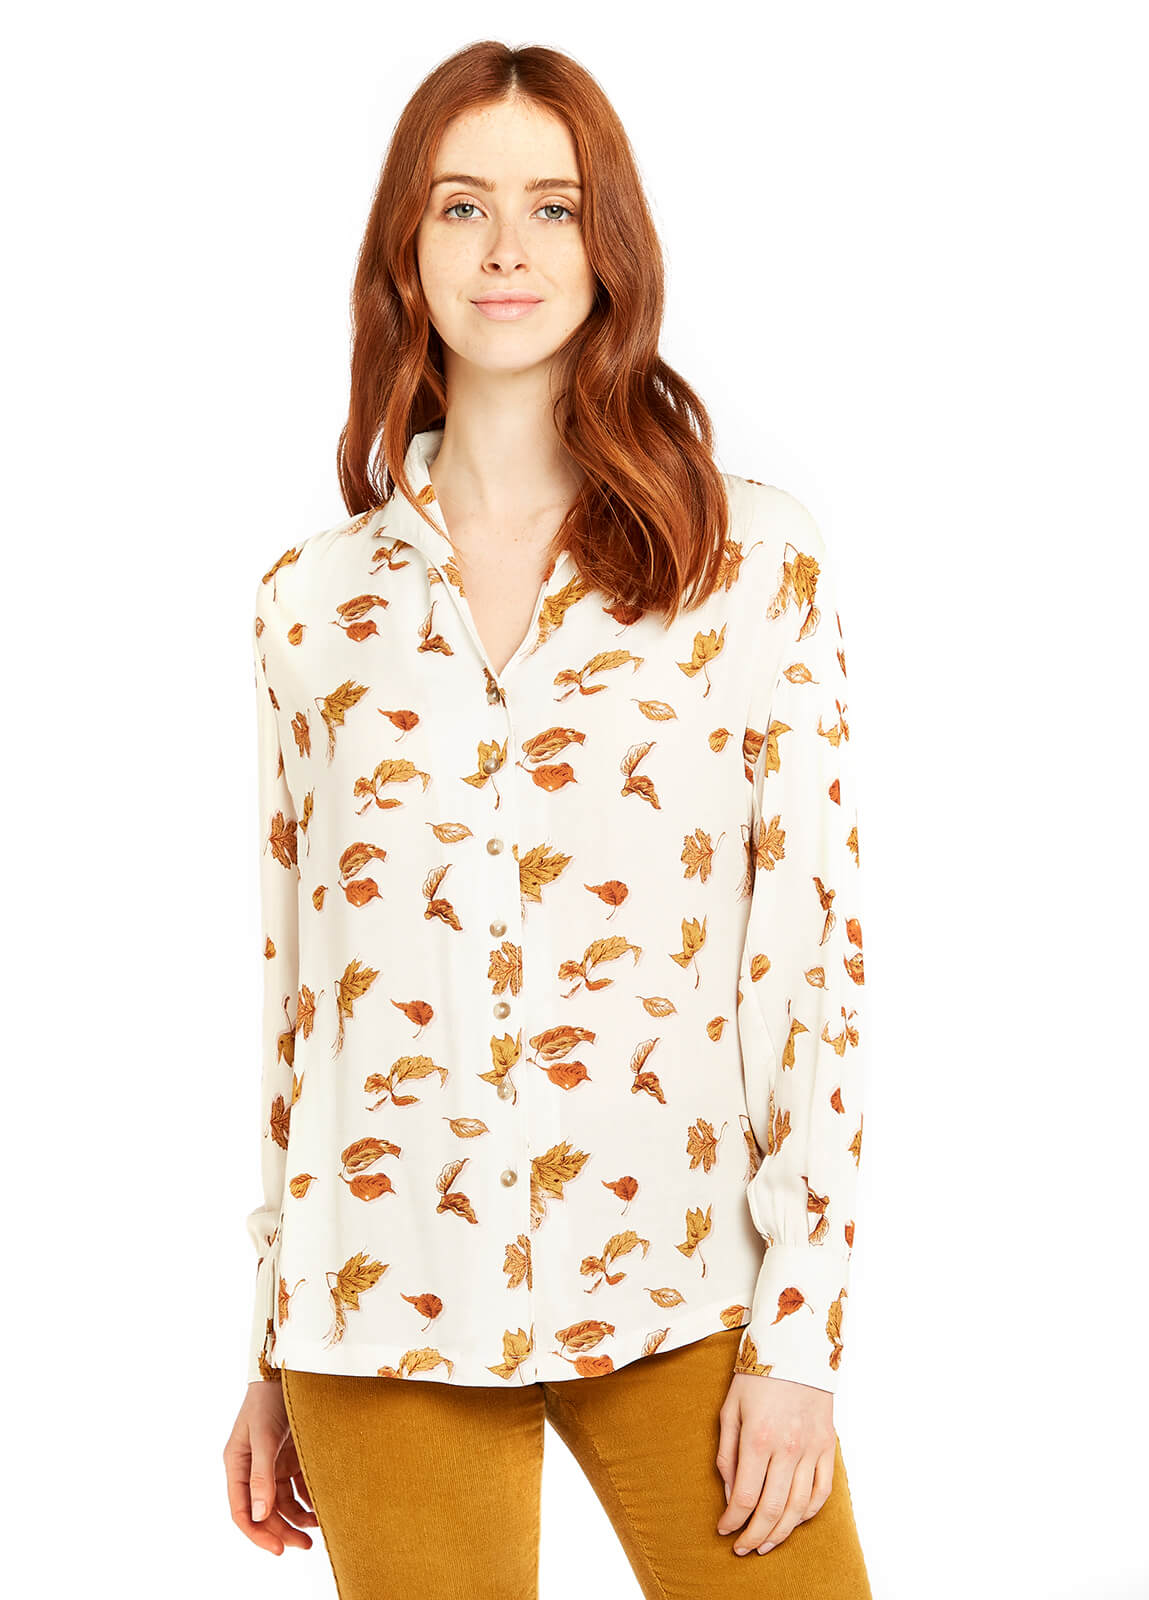 Edelweiss Shirt - Cream